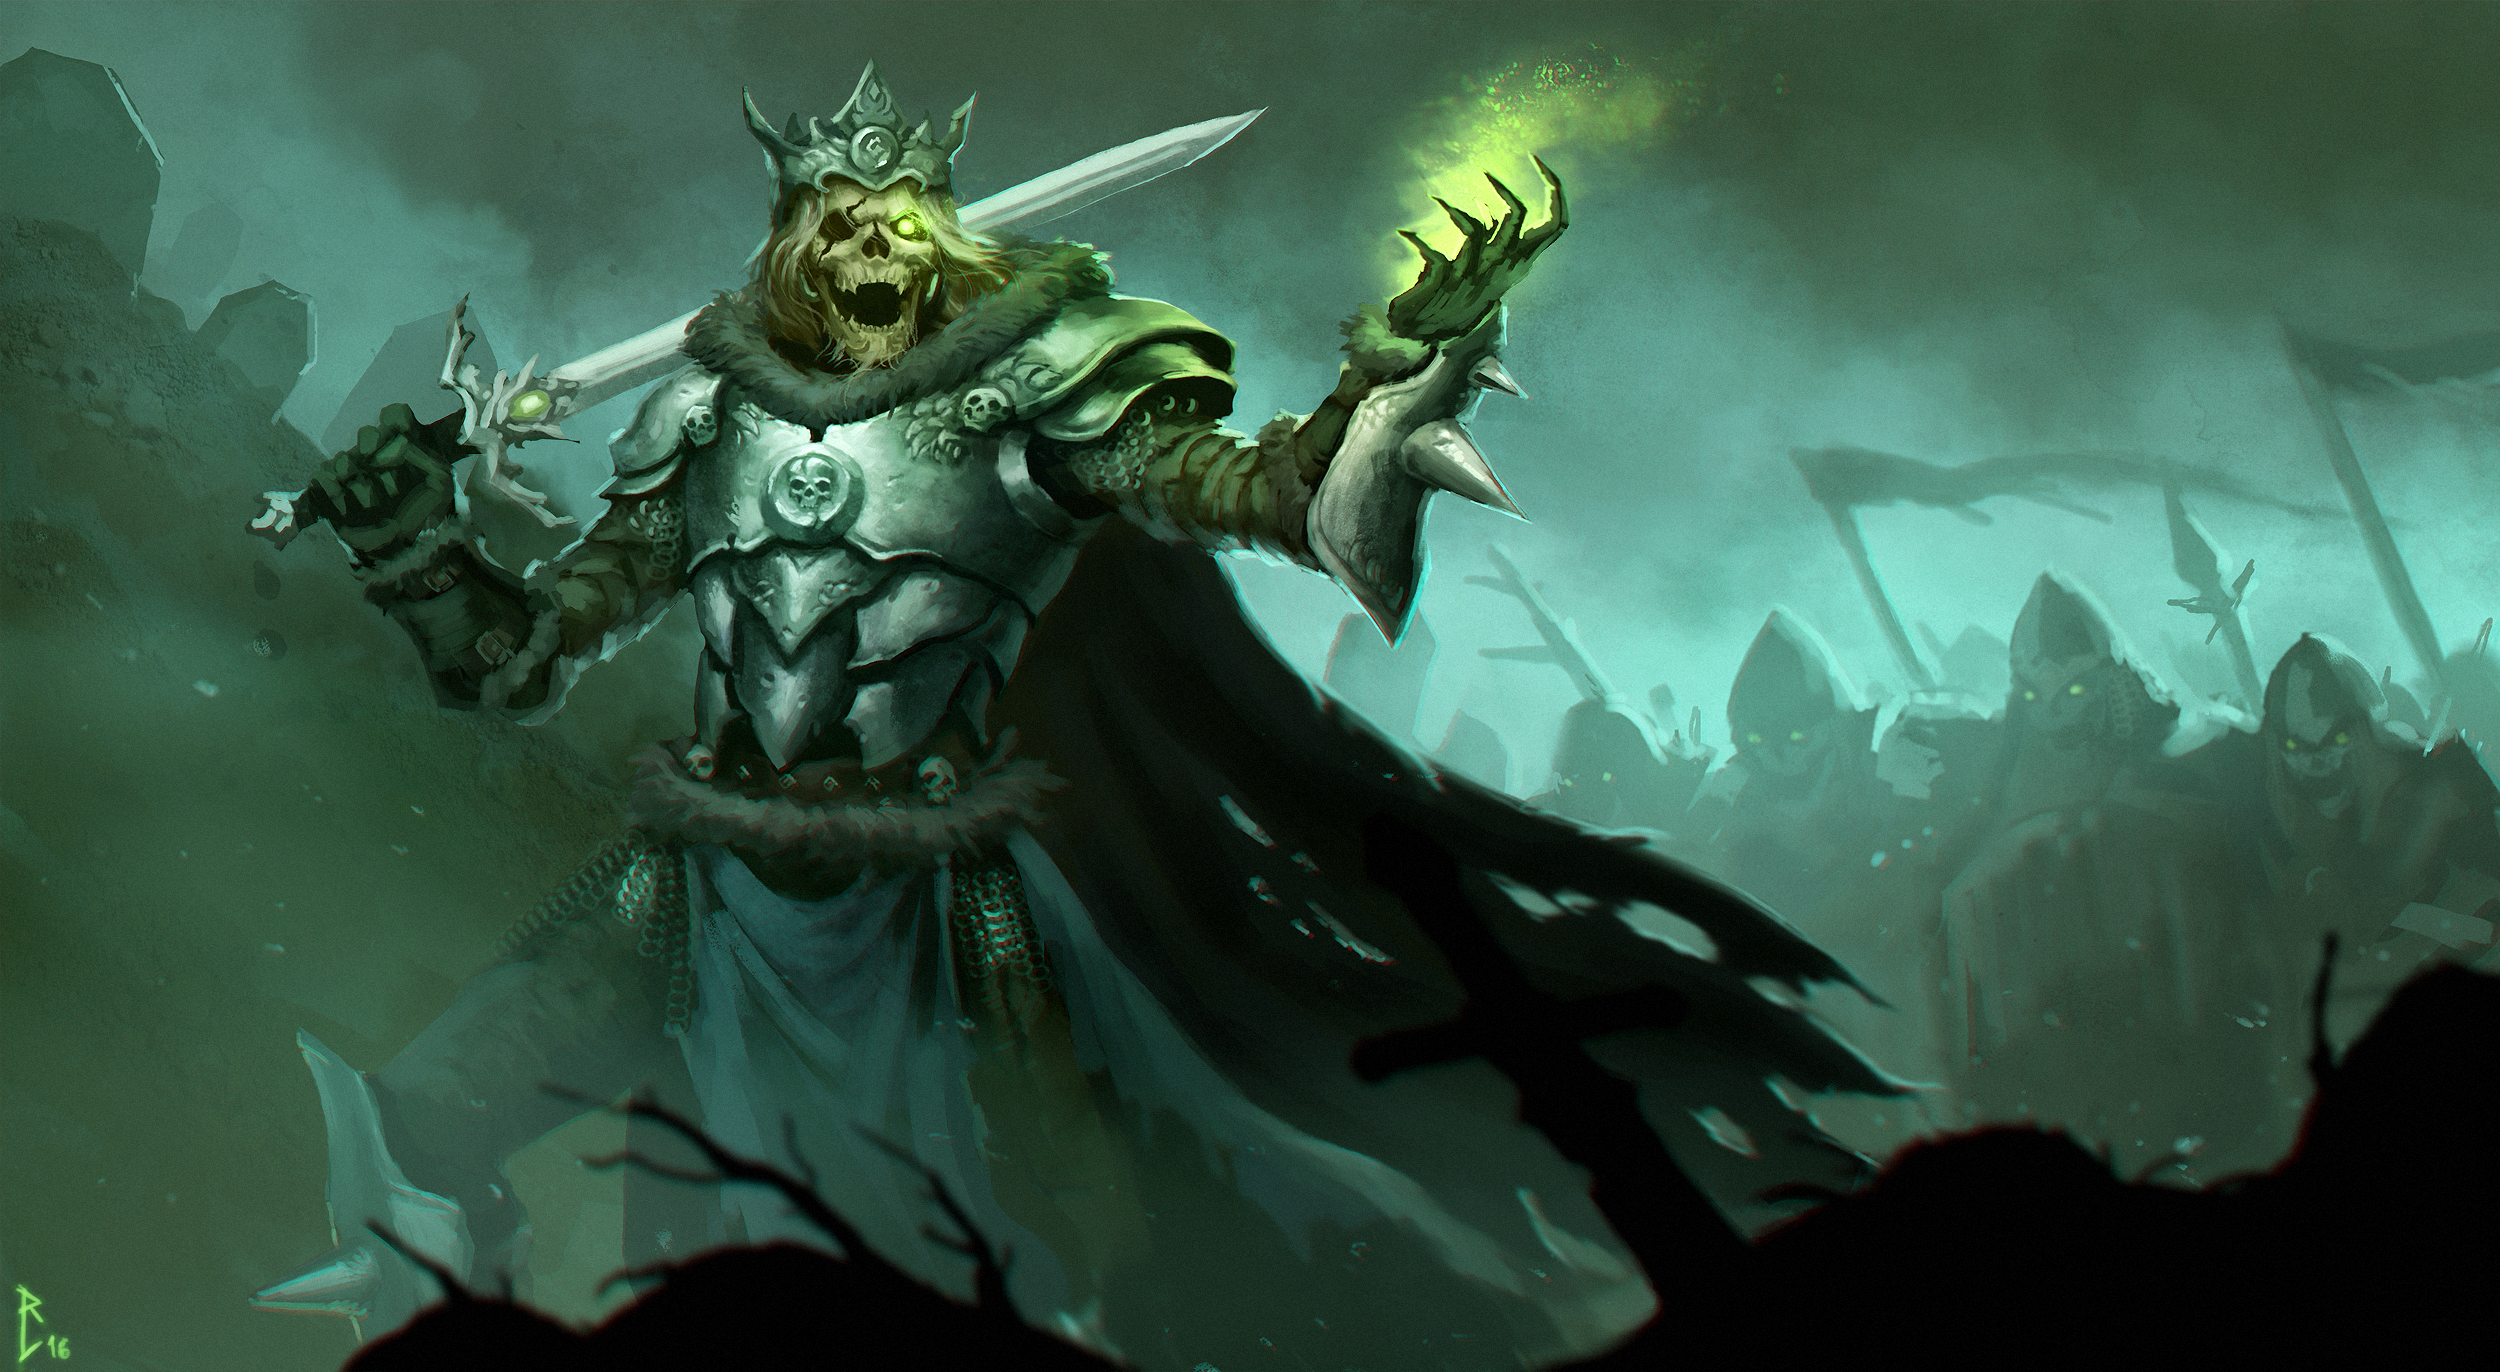 Undead Warlord